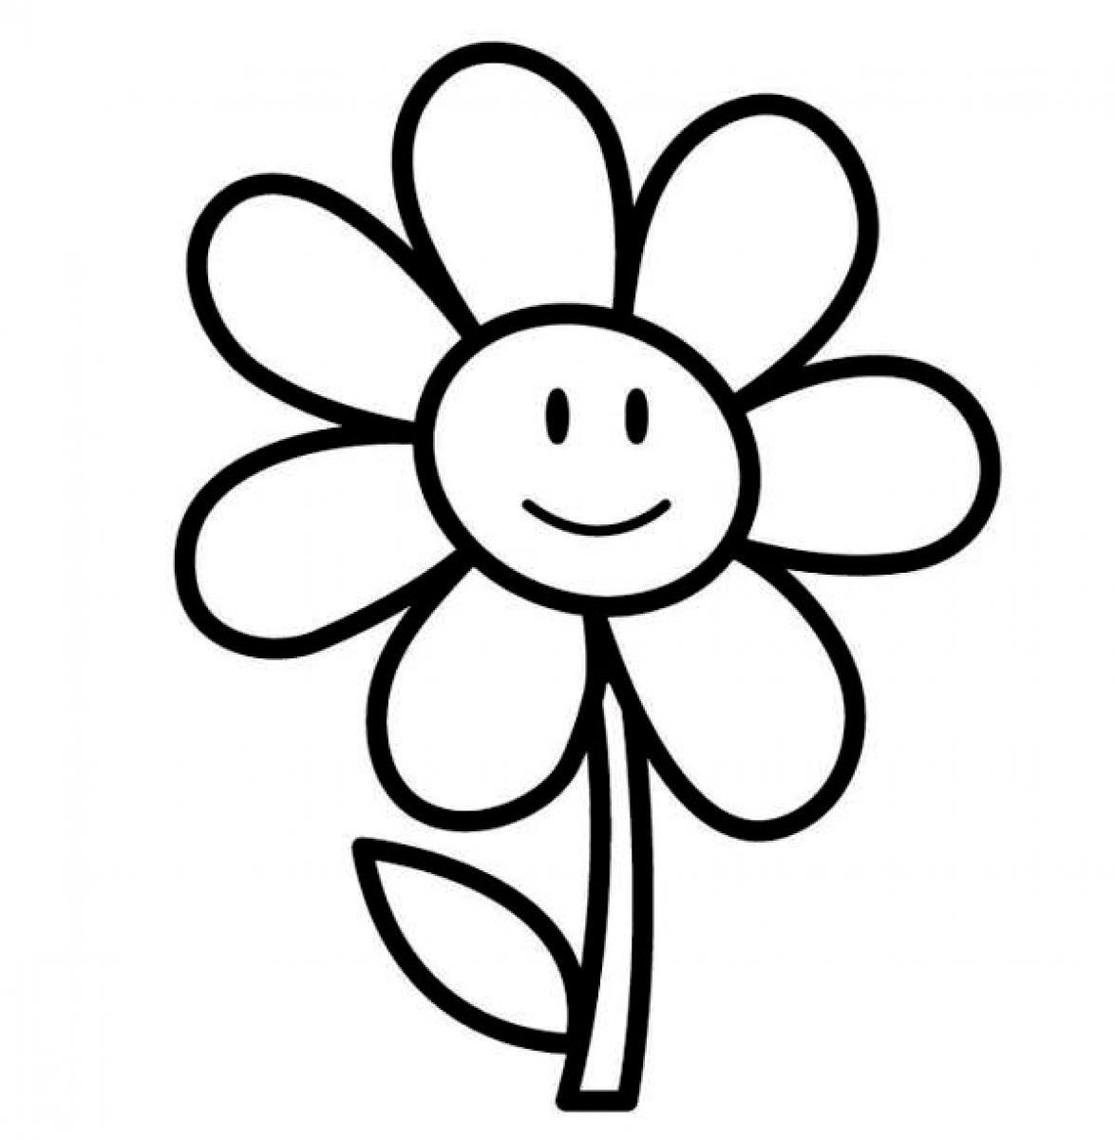 Black And White Flower Images Clipart Free Download Best